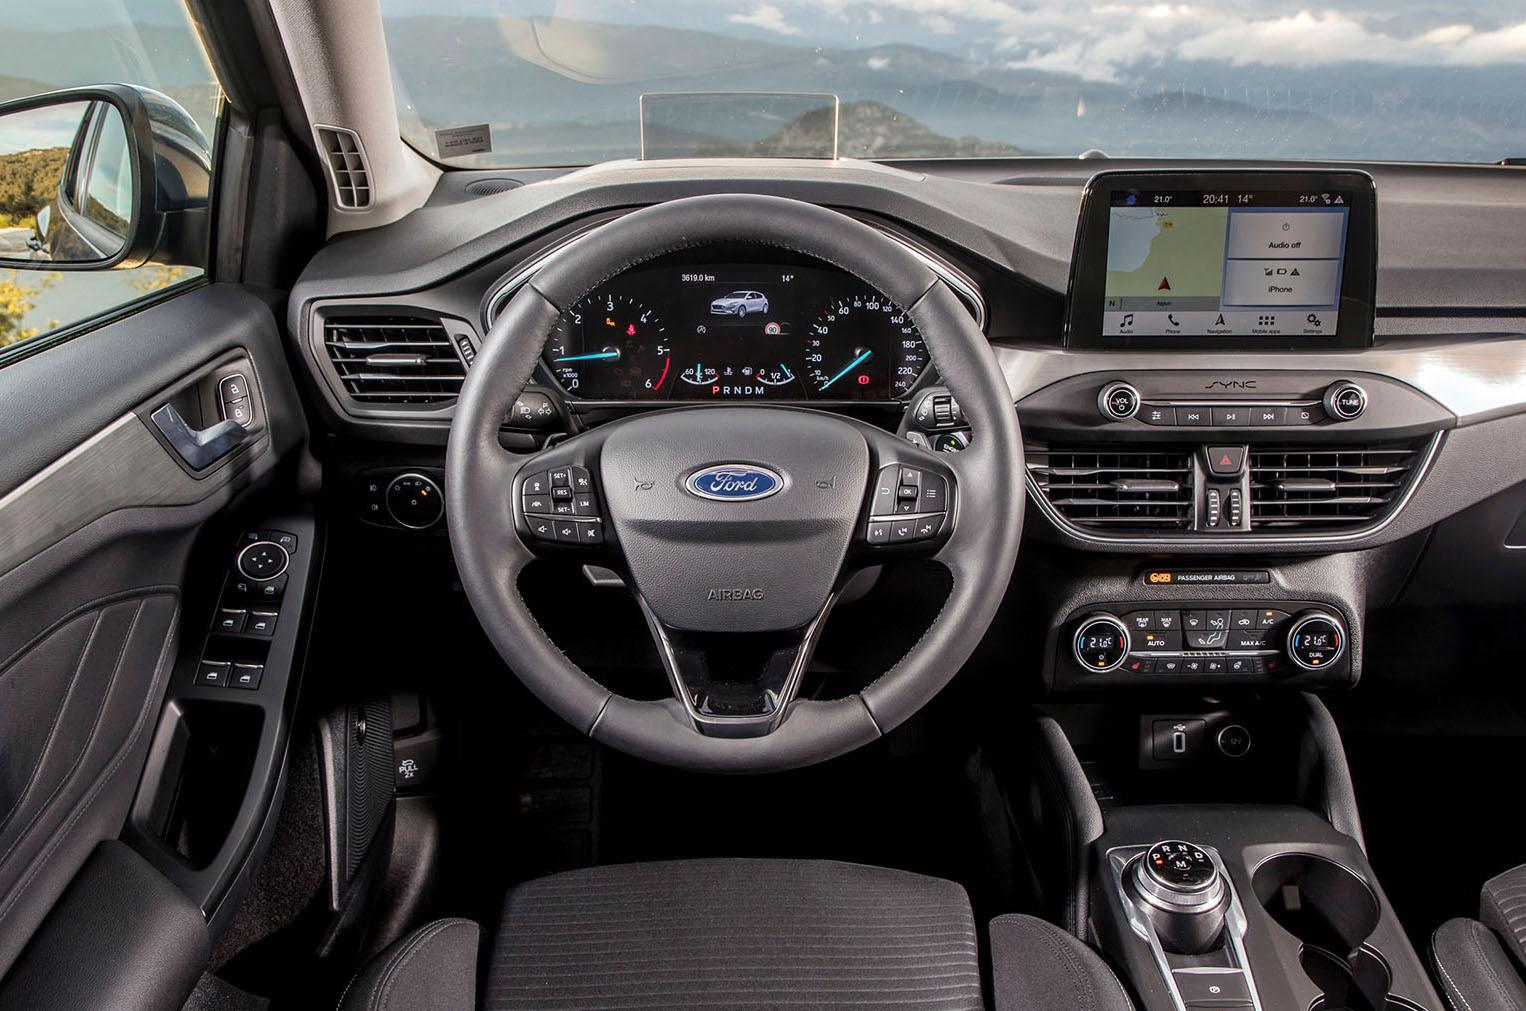 2018 Ford Focus review – price, specs and release date